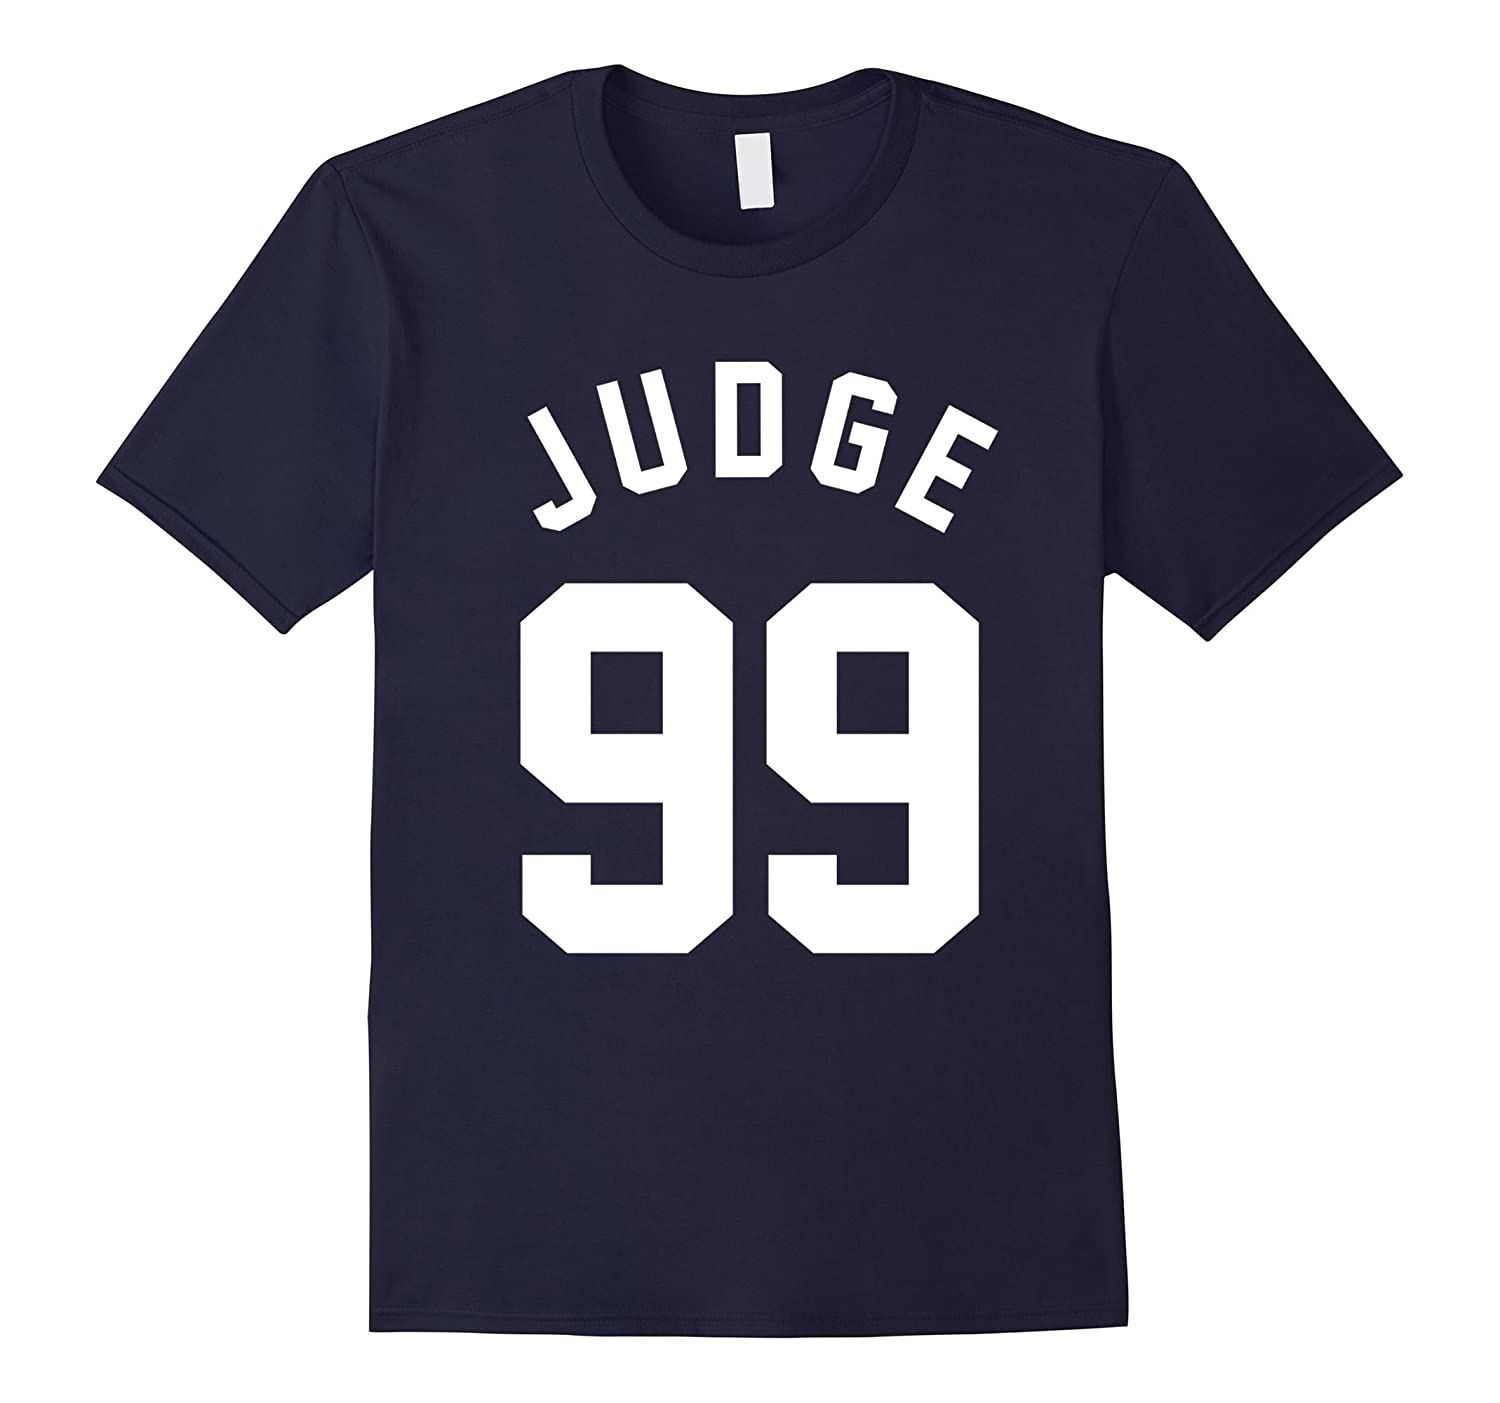 Best Aaron Judge 99 t shirts - Jersey number 99 funny Tees-Vaci